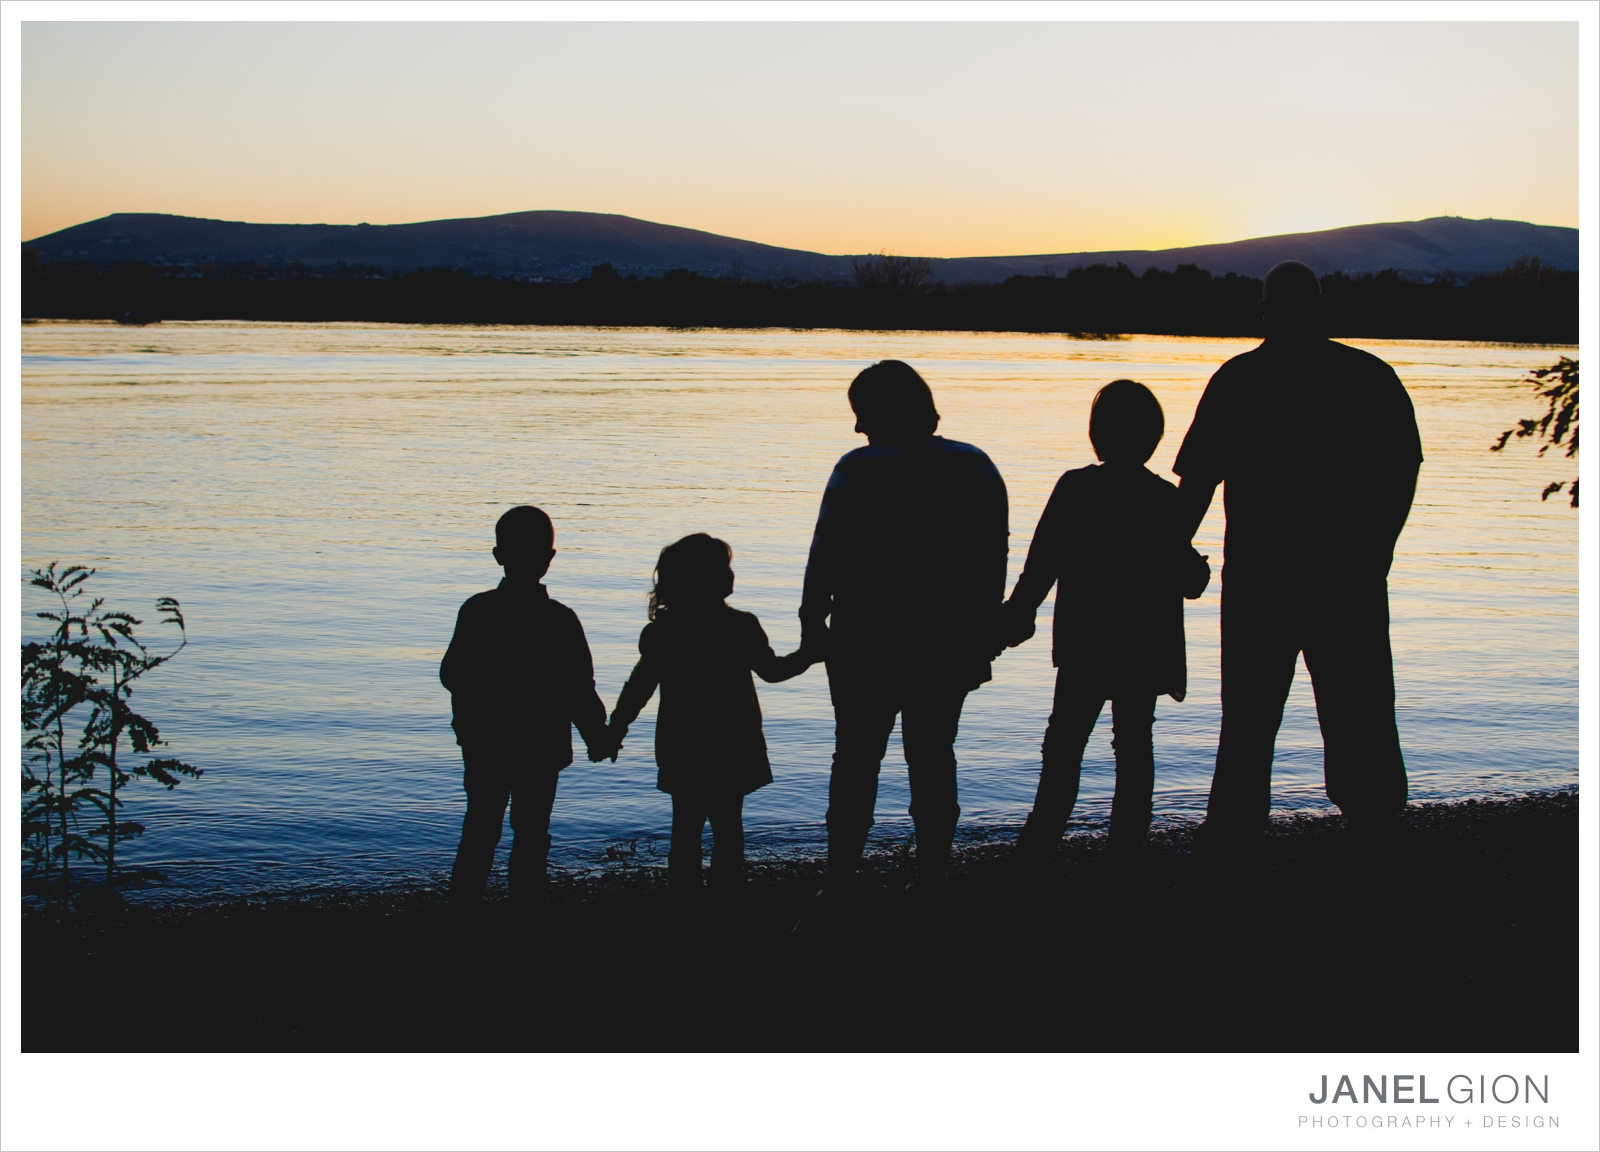 North-Idaho-Family-Children-Photographer-Year-in-Review-Contest-2013-Lifestyle-Family-Portraits-by-Janel-Gion-Photography_0047.jpg